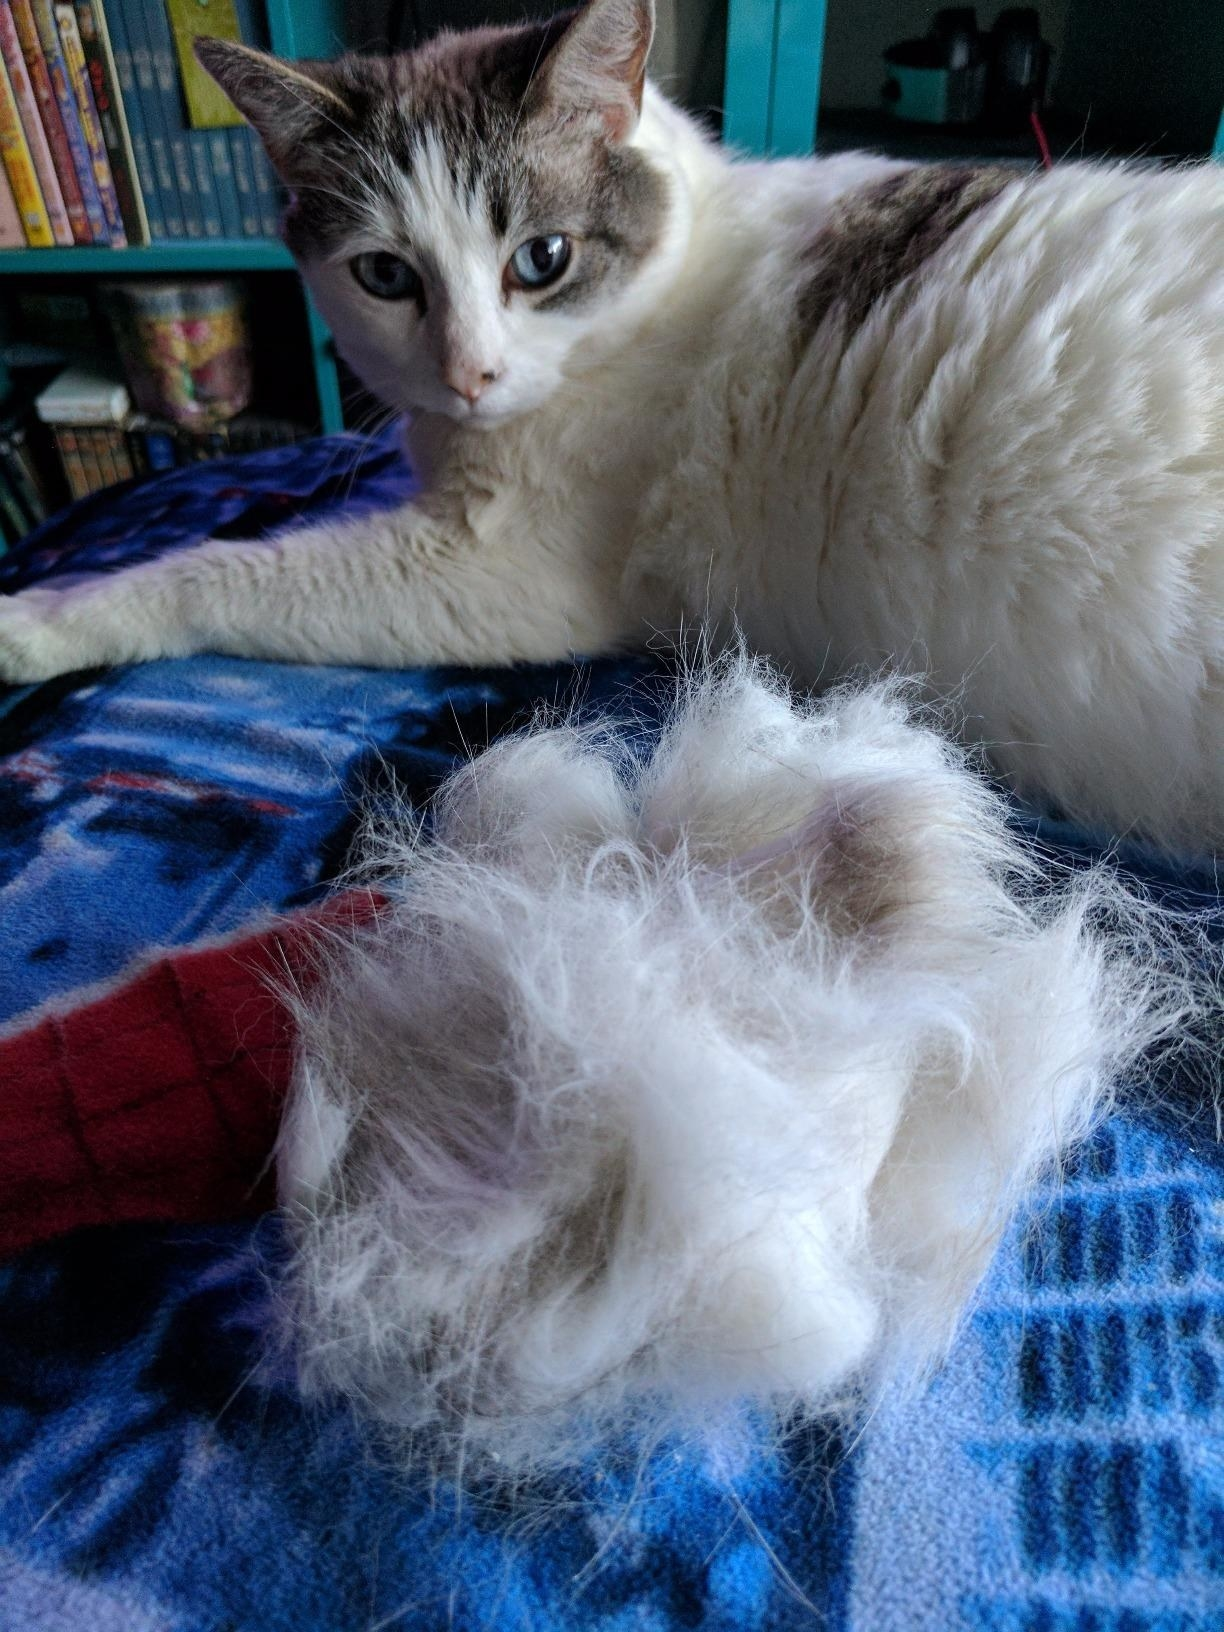 Reviewer's photo of their gray and white cat lying beside a pile of fur